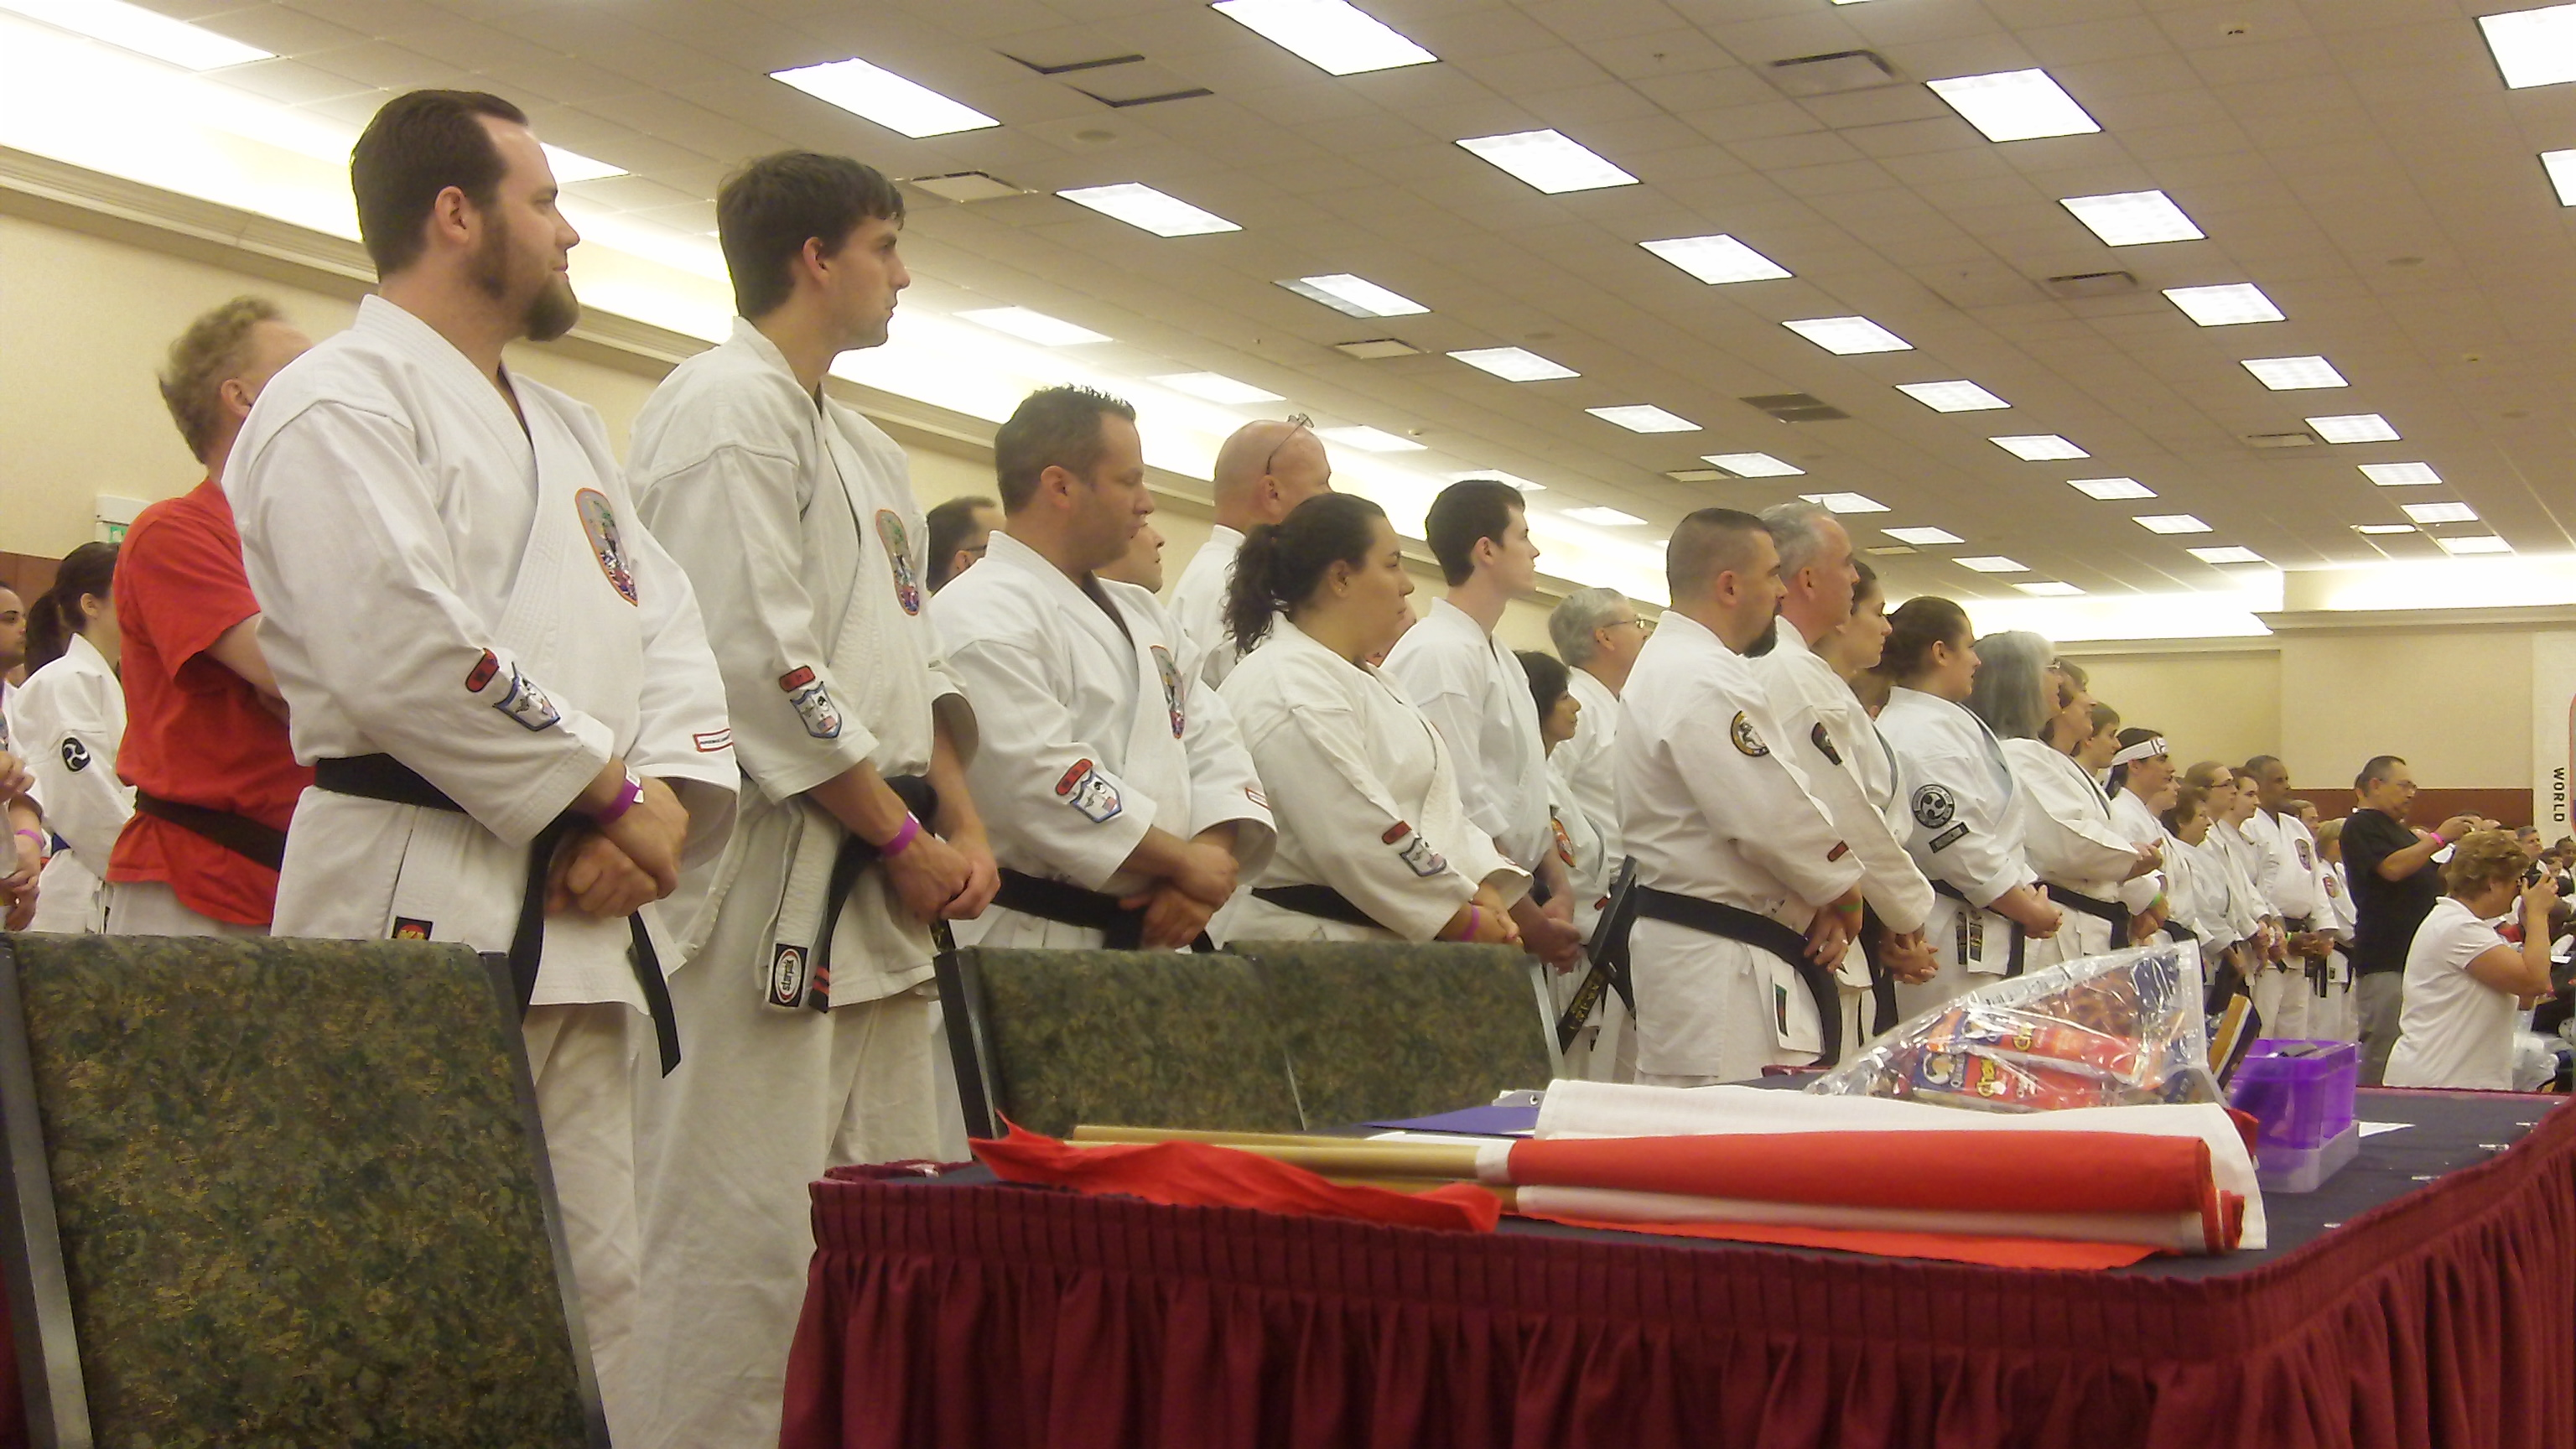 Isshinryu Karate World Tournament (IWKA).